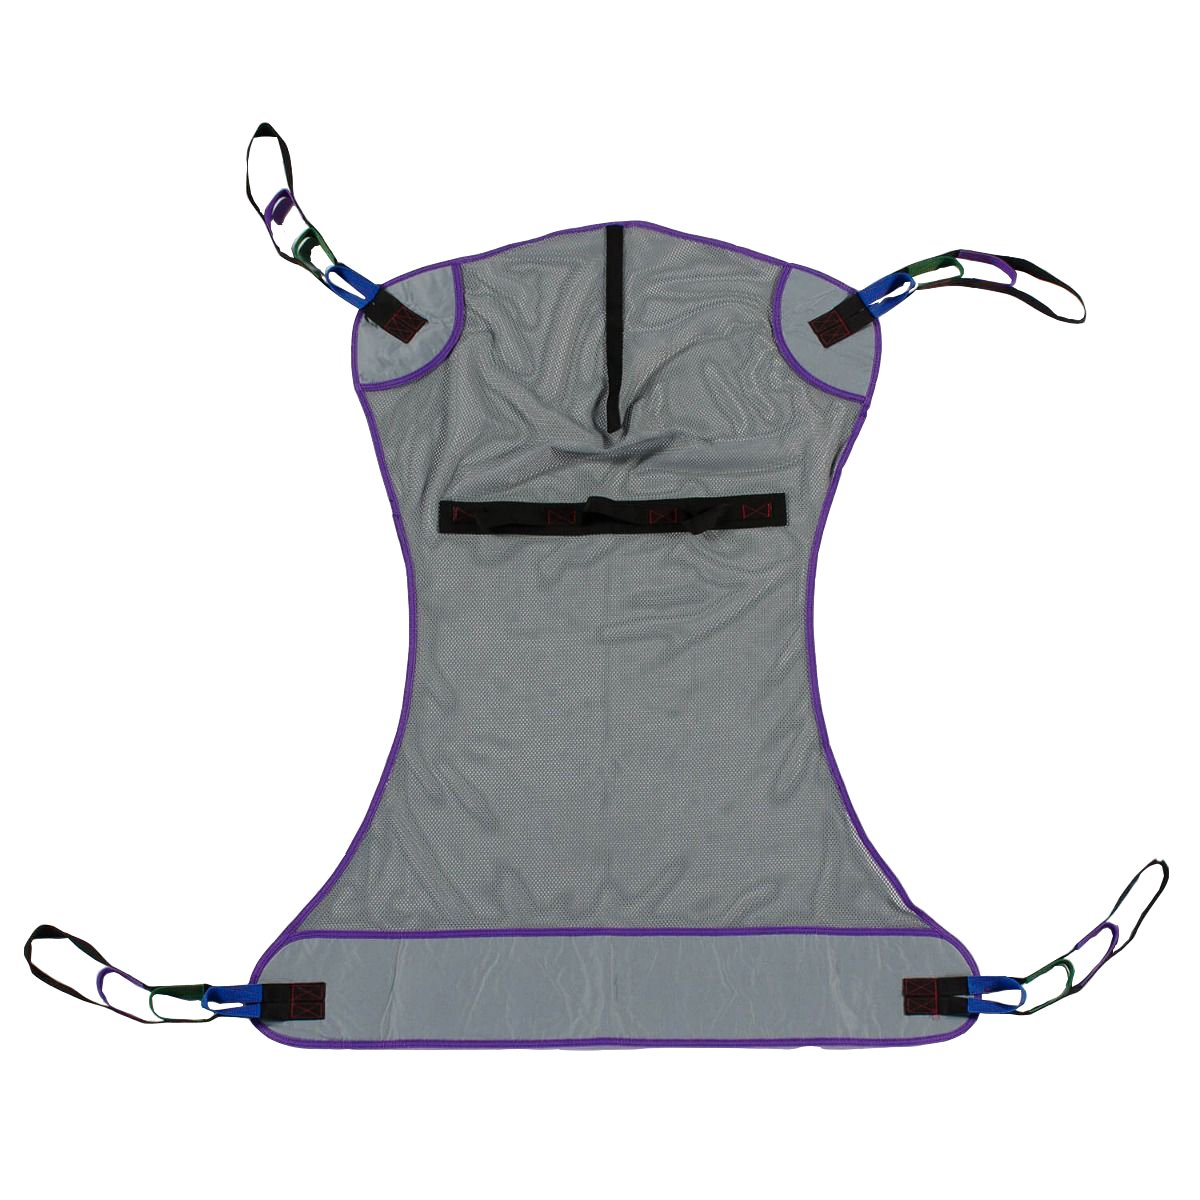 Full Body Mesh Patient Lift Sling, 600lb Weight Capacity (Large) by Patient Aid